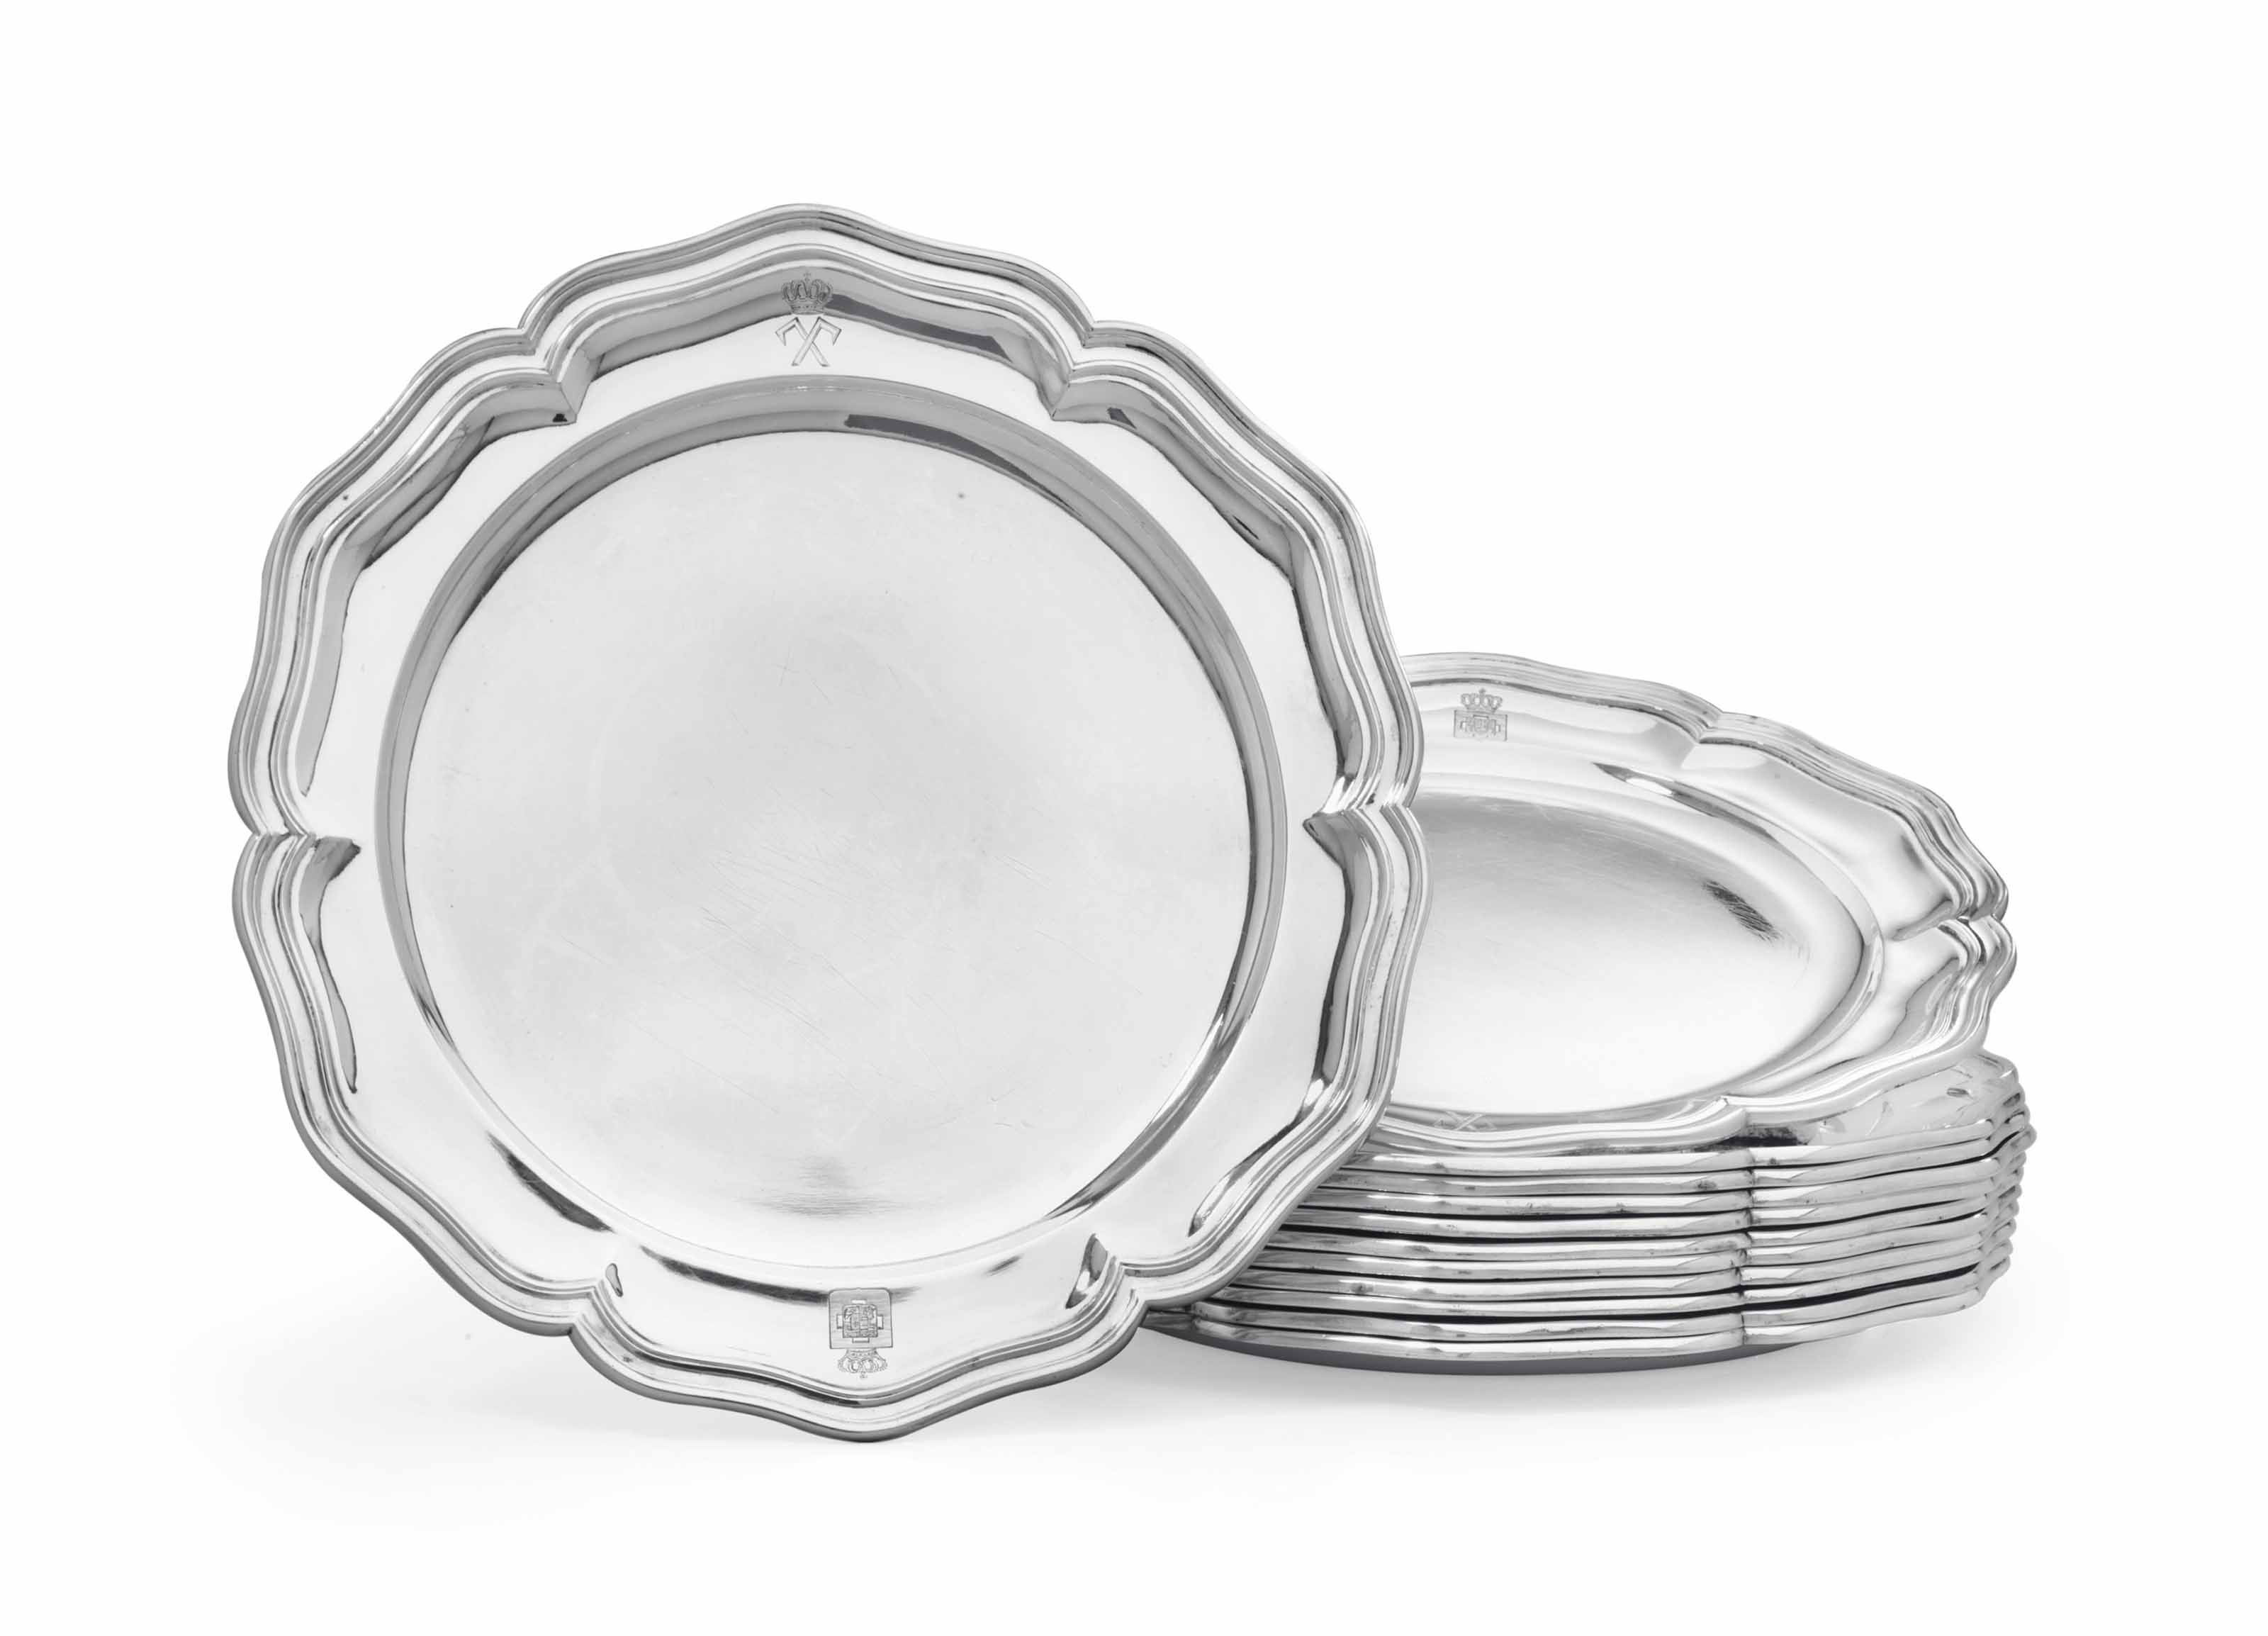 A SET OF TWELVE DANISH SILVER DINNER PLATES FROM THE COLLECTION OF KING GEORGE I OF THE HELLENES